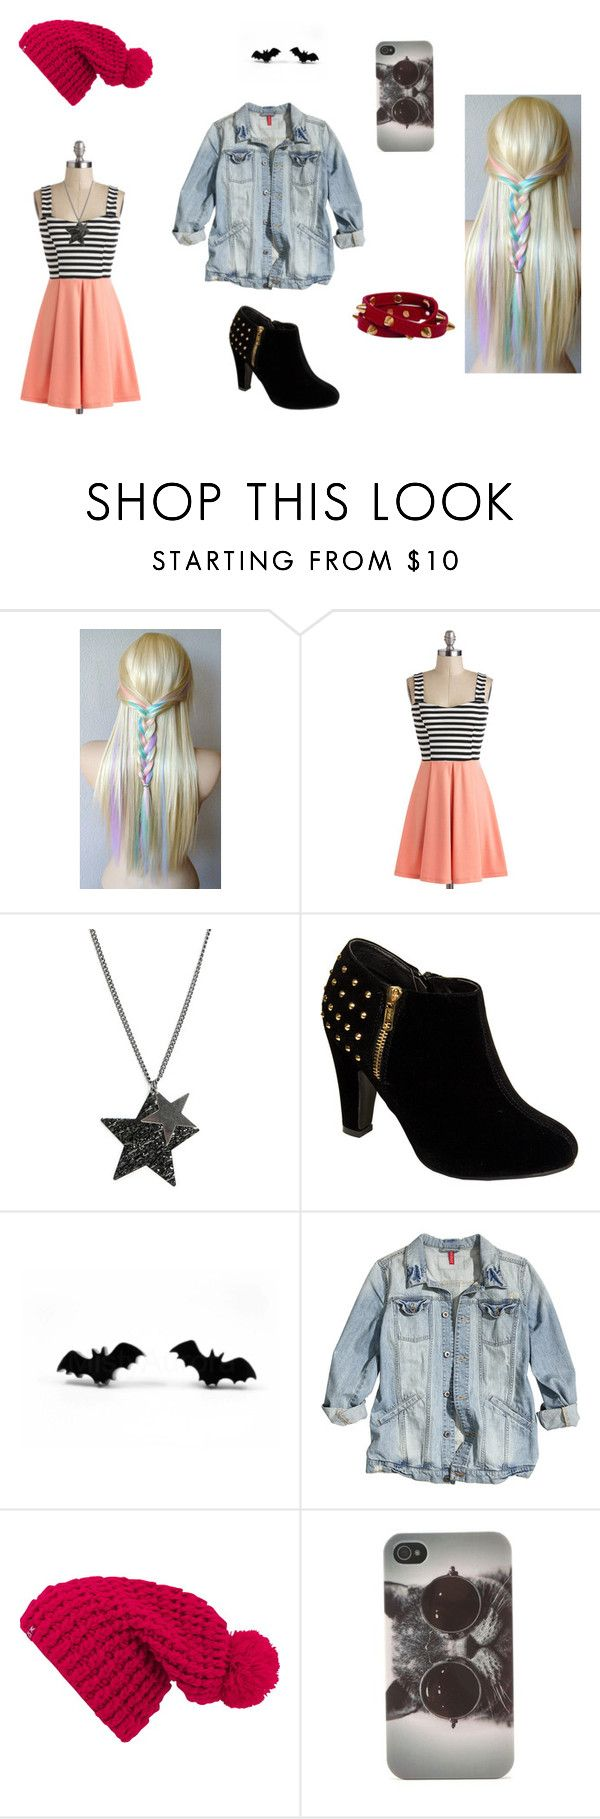 """""""October movies."""" by lyzerod ❤ liked on Polyvore featuring MANGO, Monday, H&M, Kari Traa, With Love From CA and Humble Chic"""